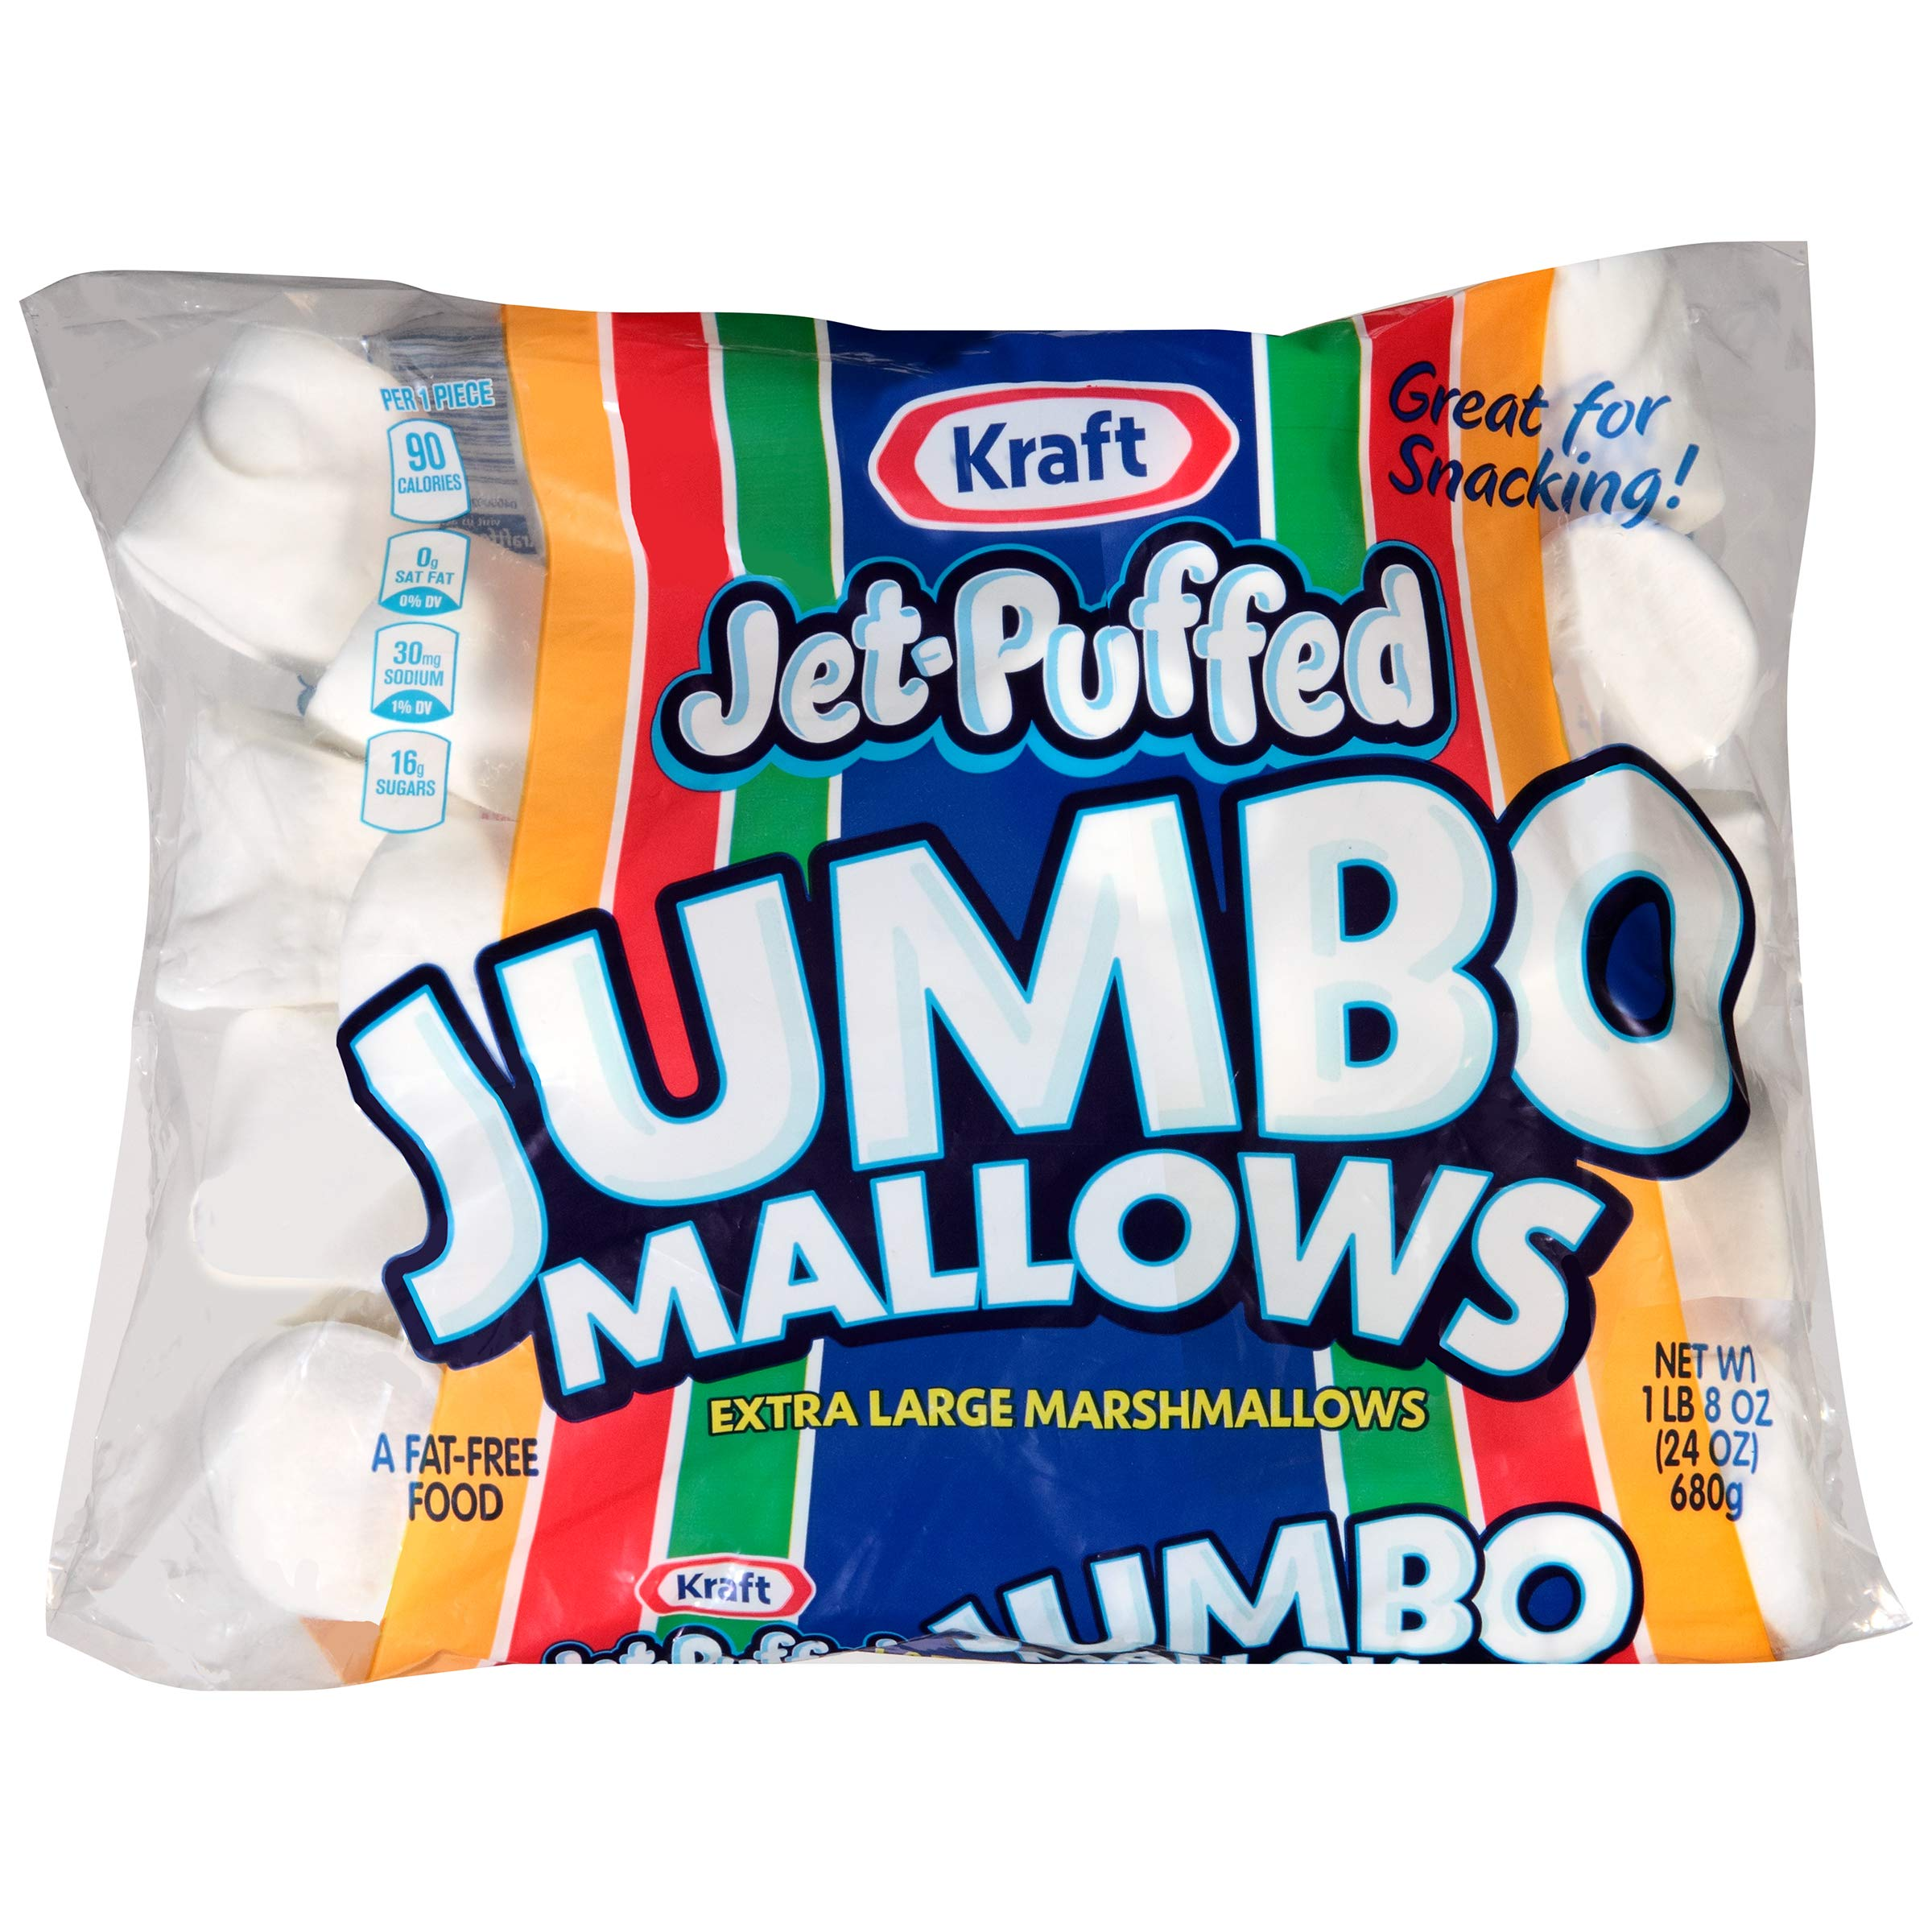 Jet Puffed Jumbo Marshmallows (24 oz Bag) by Jet-Puffed